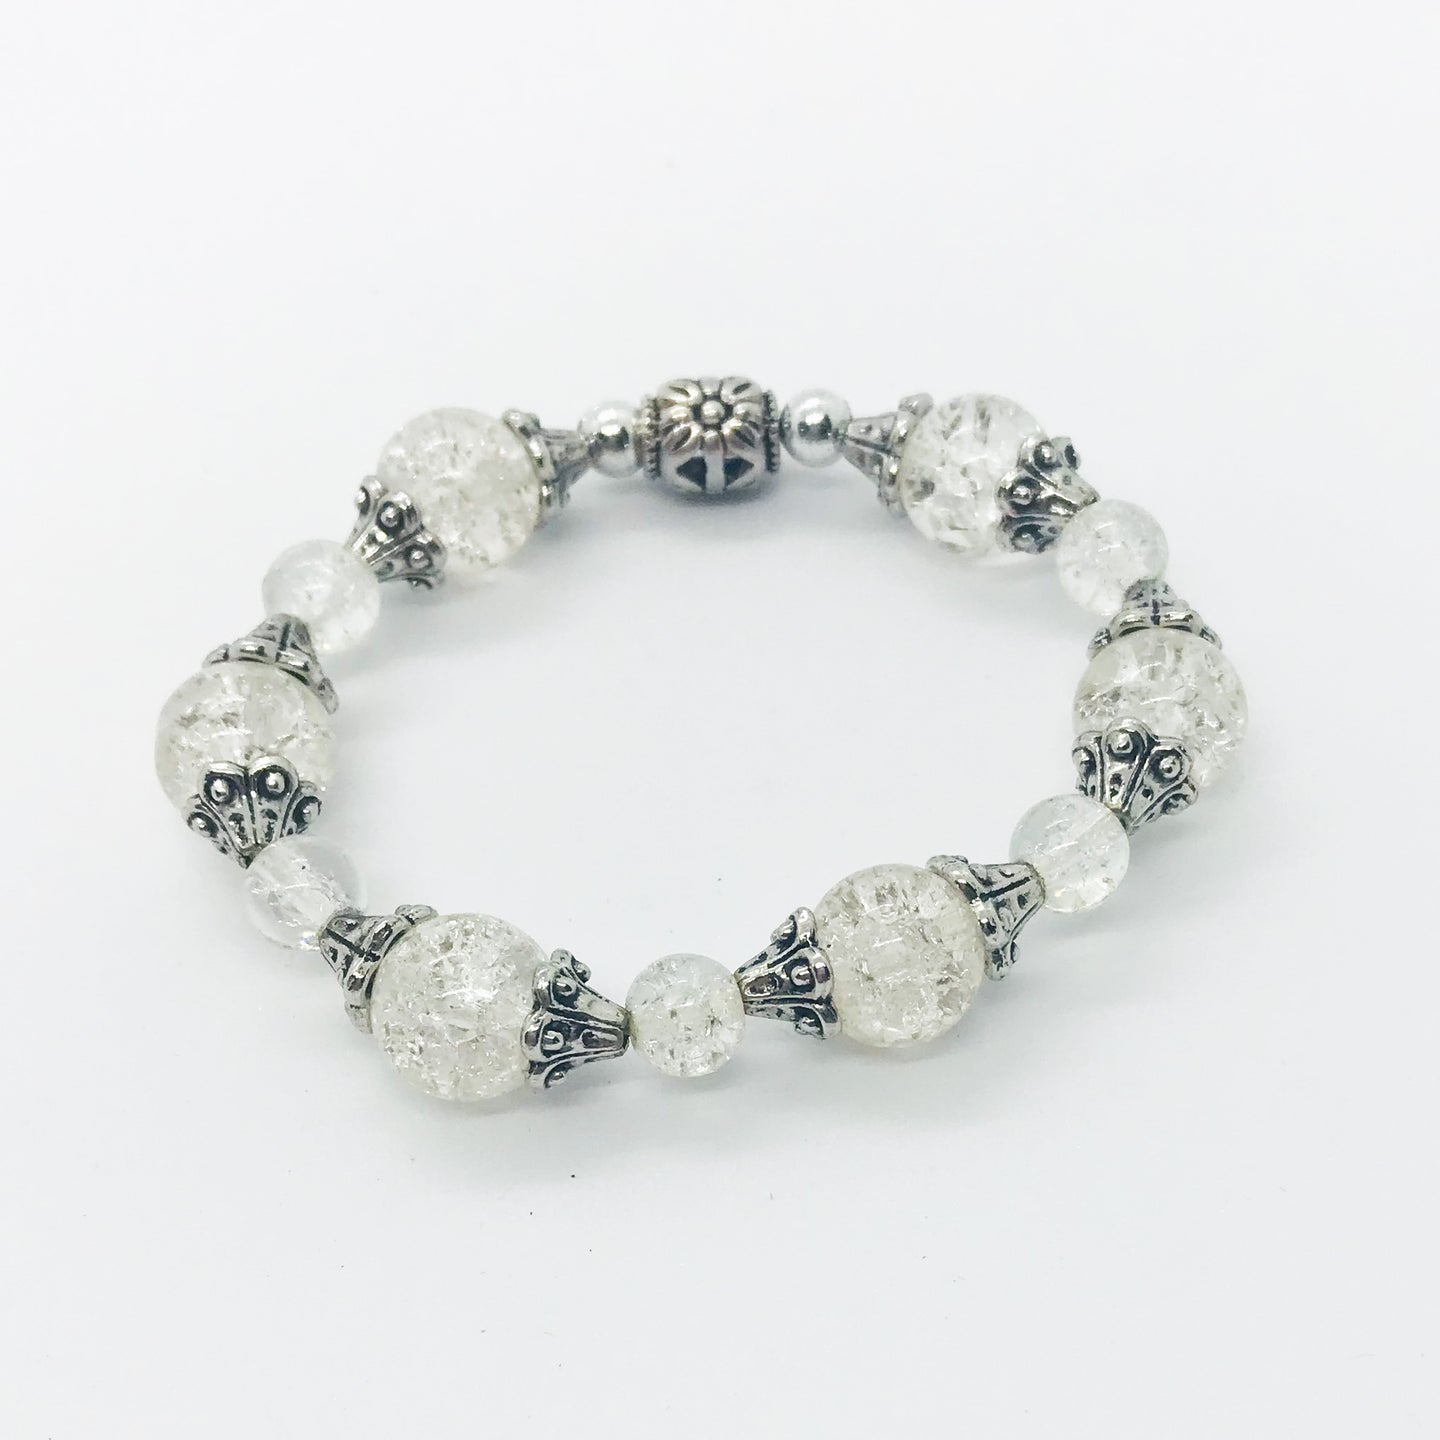 Glass Bead Bracelet - B596